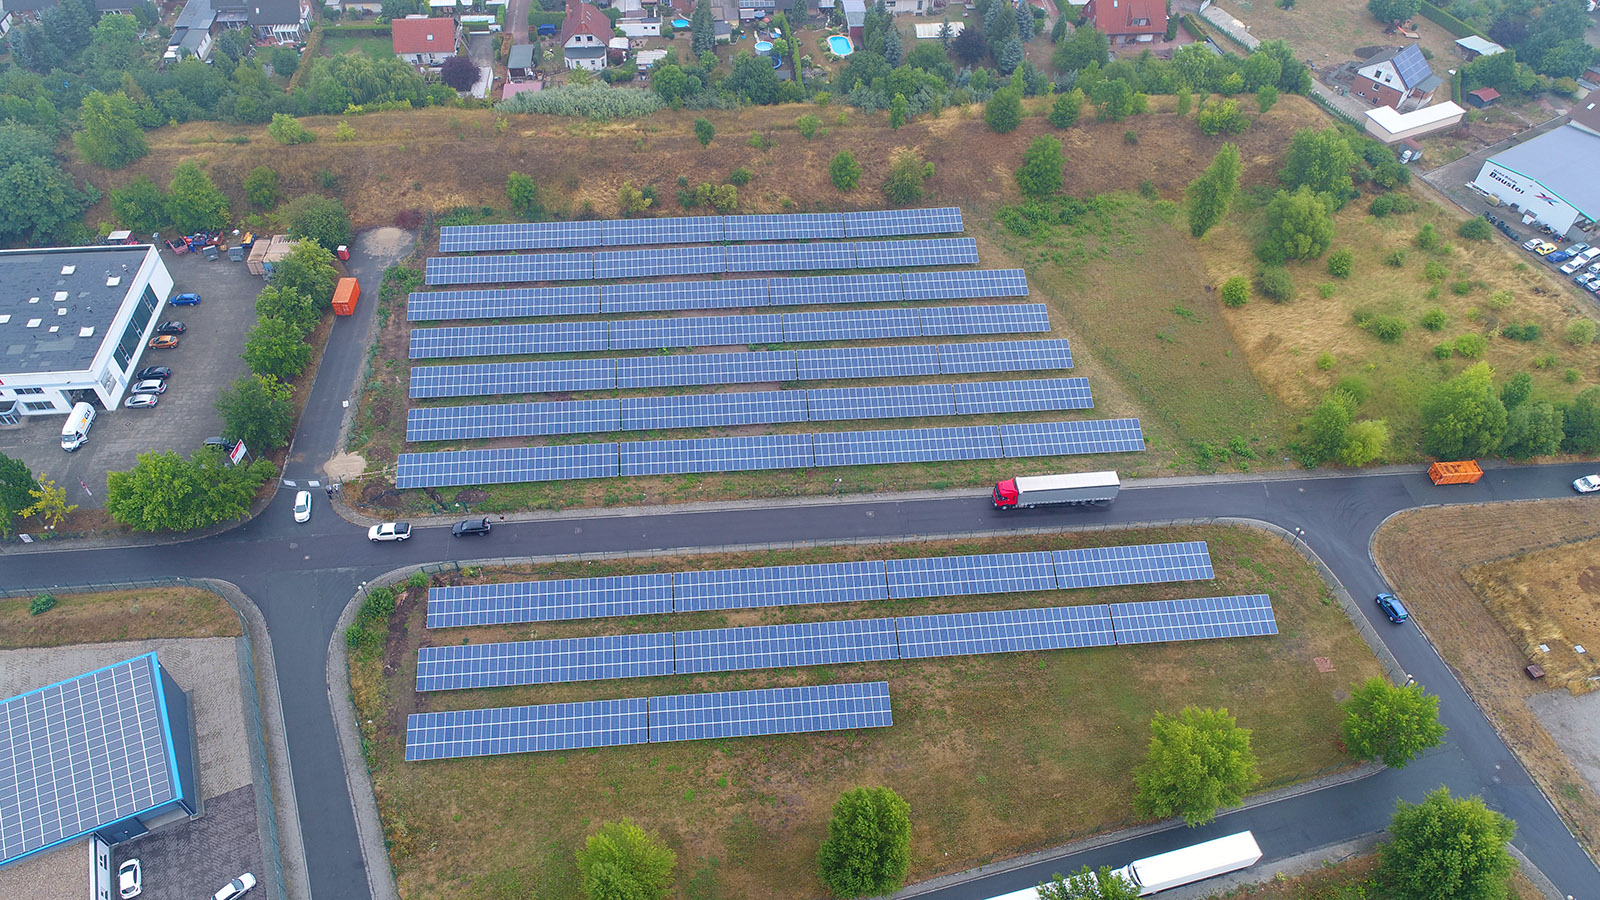 Belectric PV Dach Hermsdorf